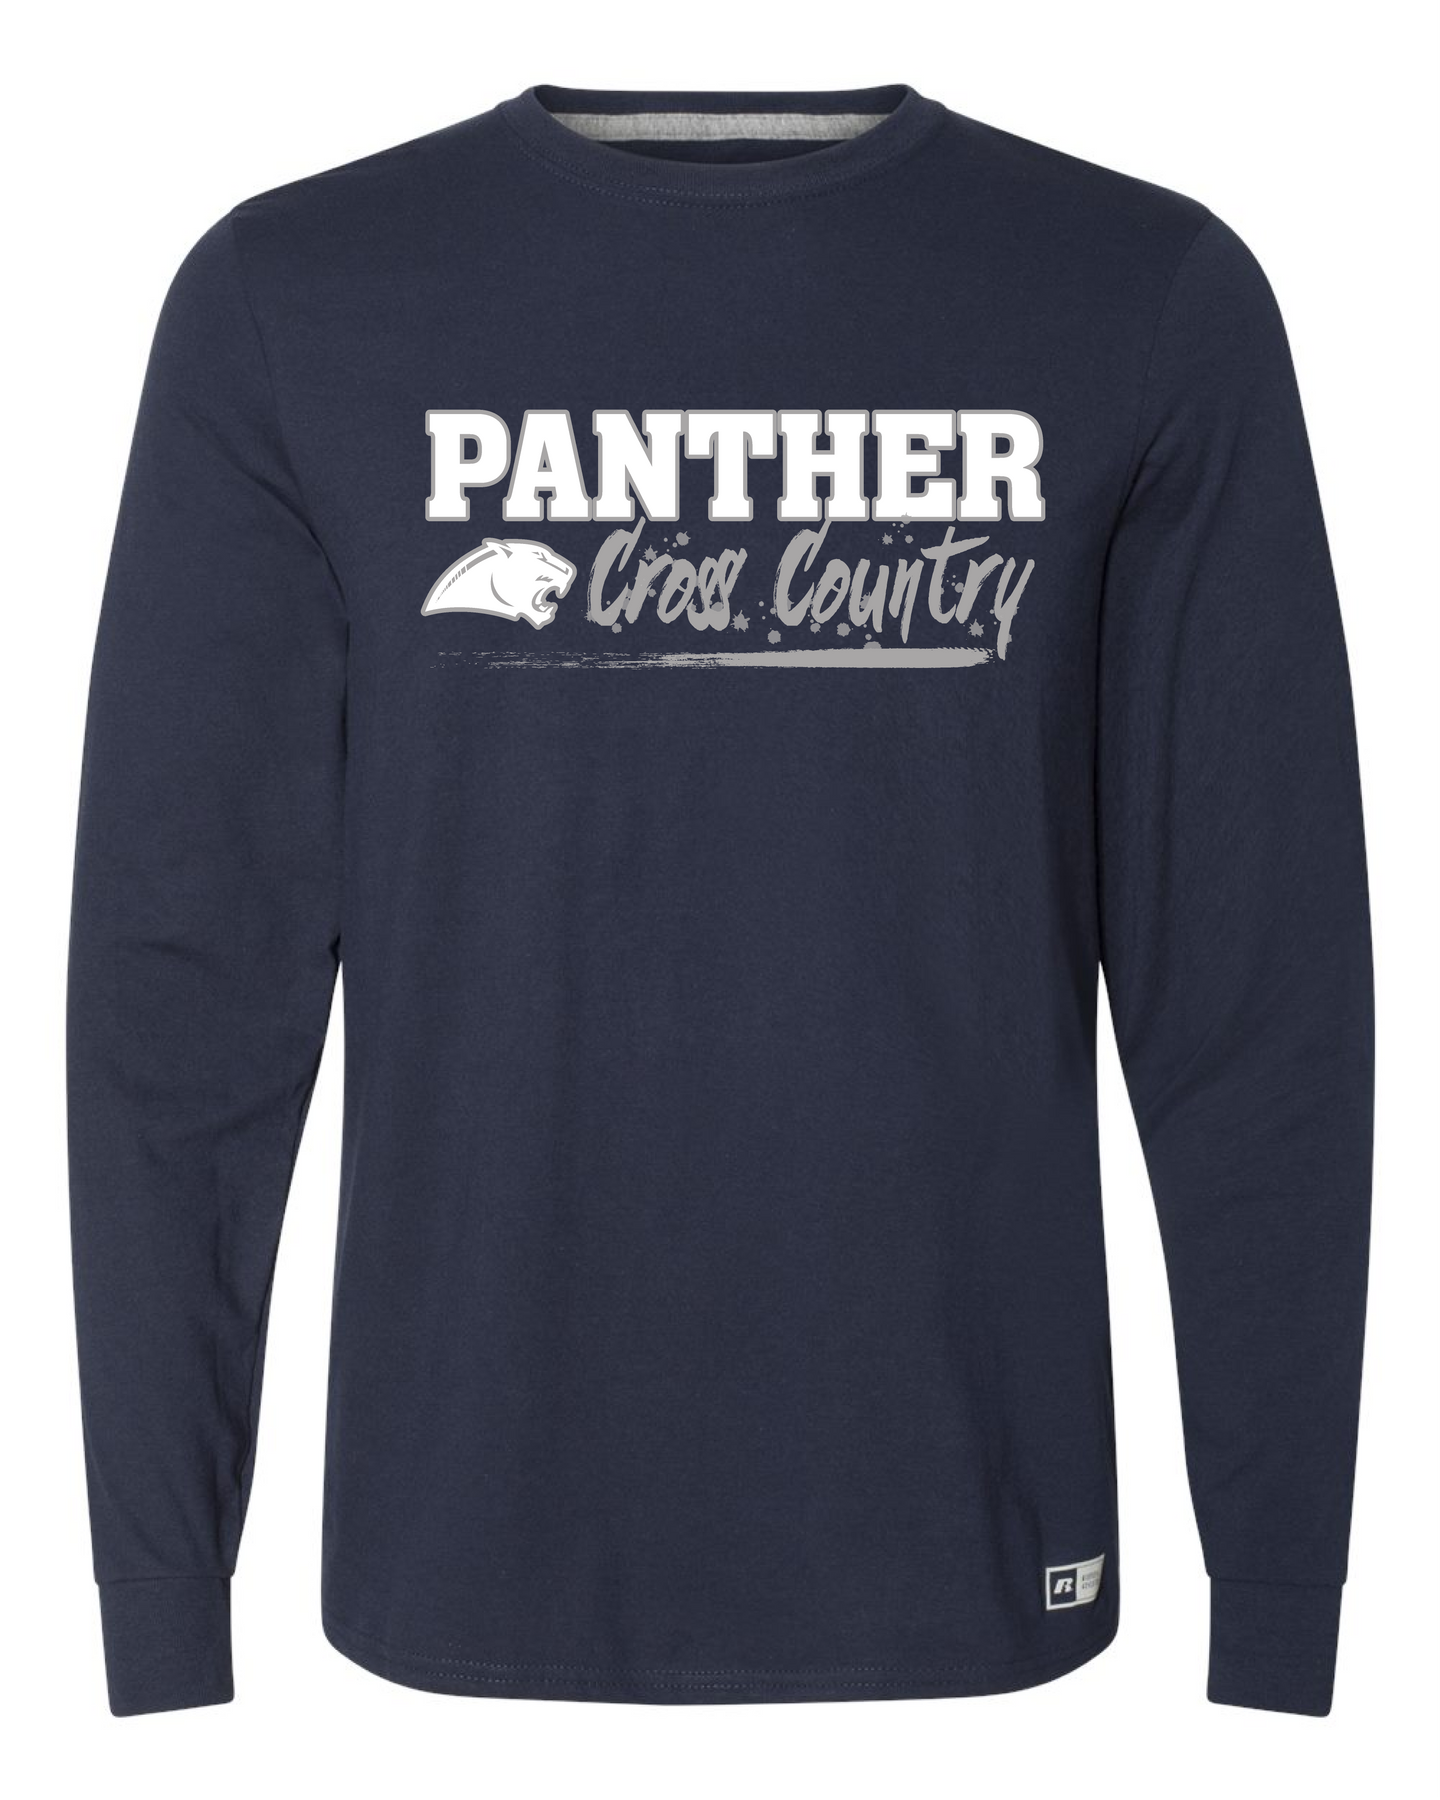 2020 PANORAMA CROSS COUNTRY-Russell Athletic - Essential 60/40 Performance Long Sleeve T-Shirt - 64LTTM